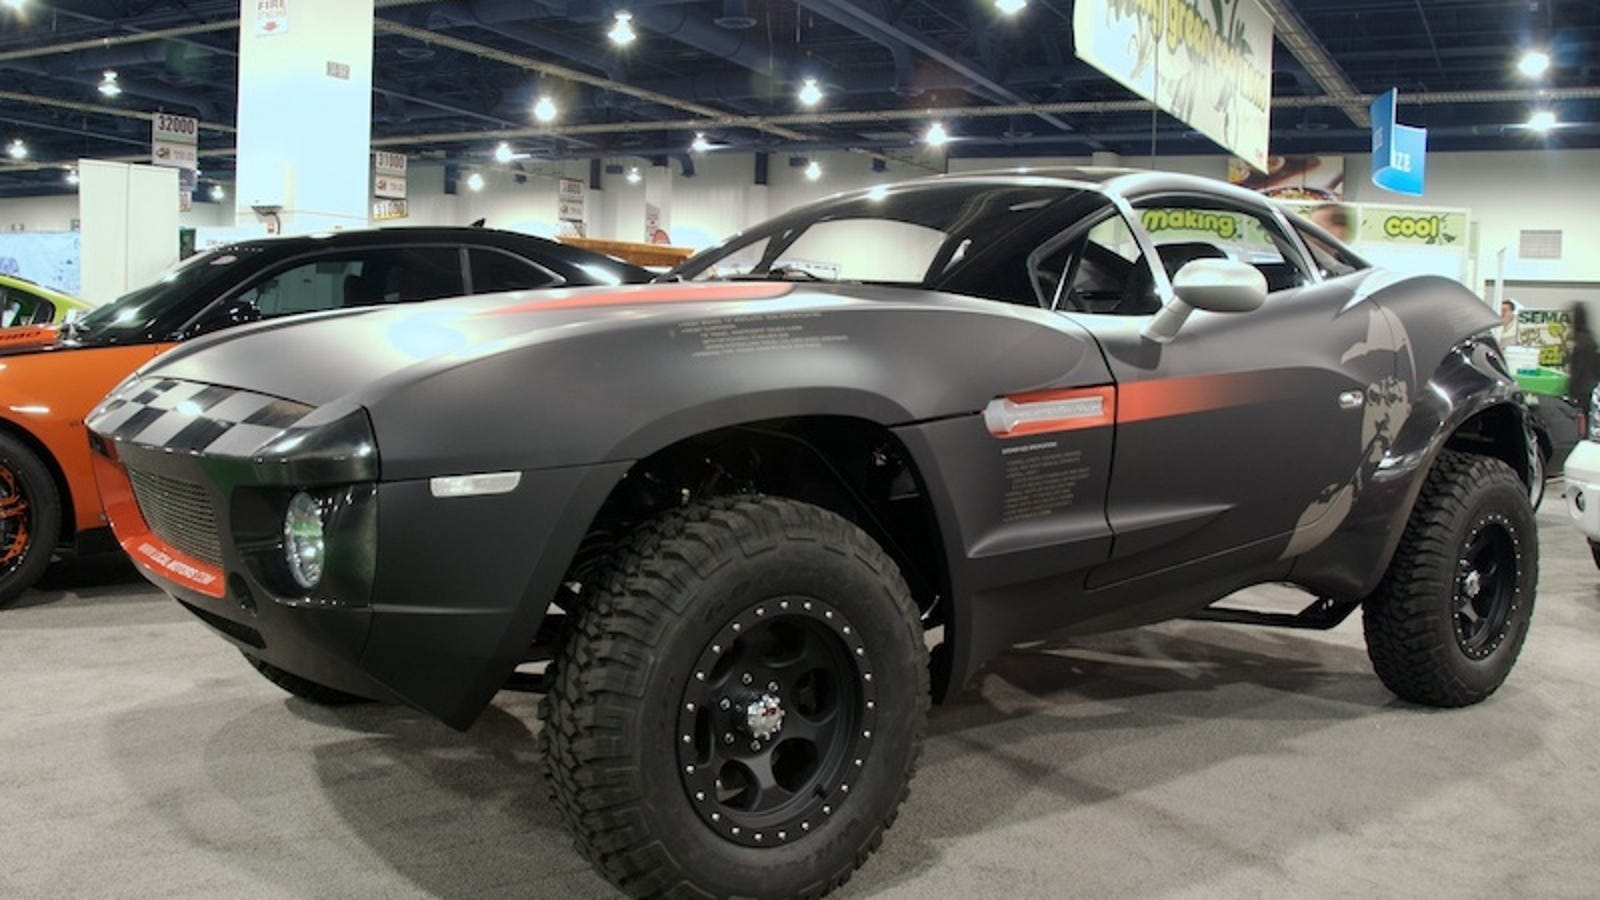 Local Motors Rally Fighter >> Local Motors Rally Fighter: The First-Ever Creative Commons Car